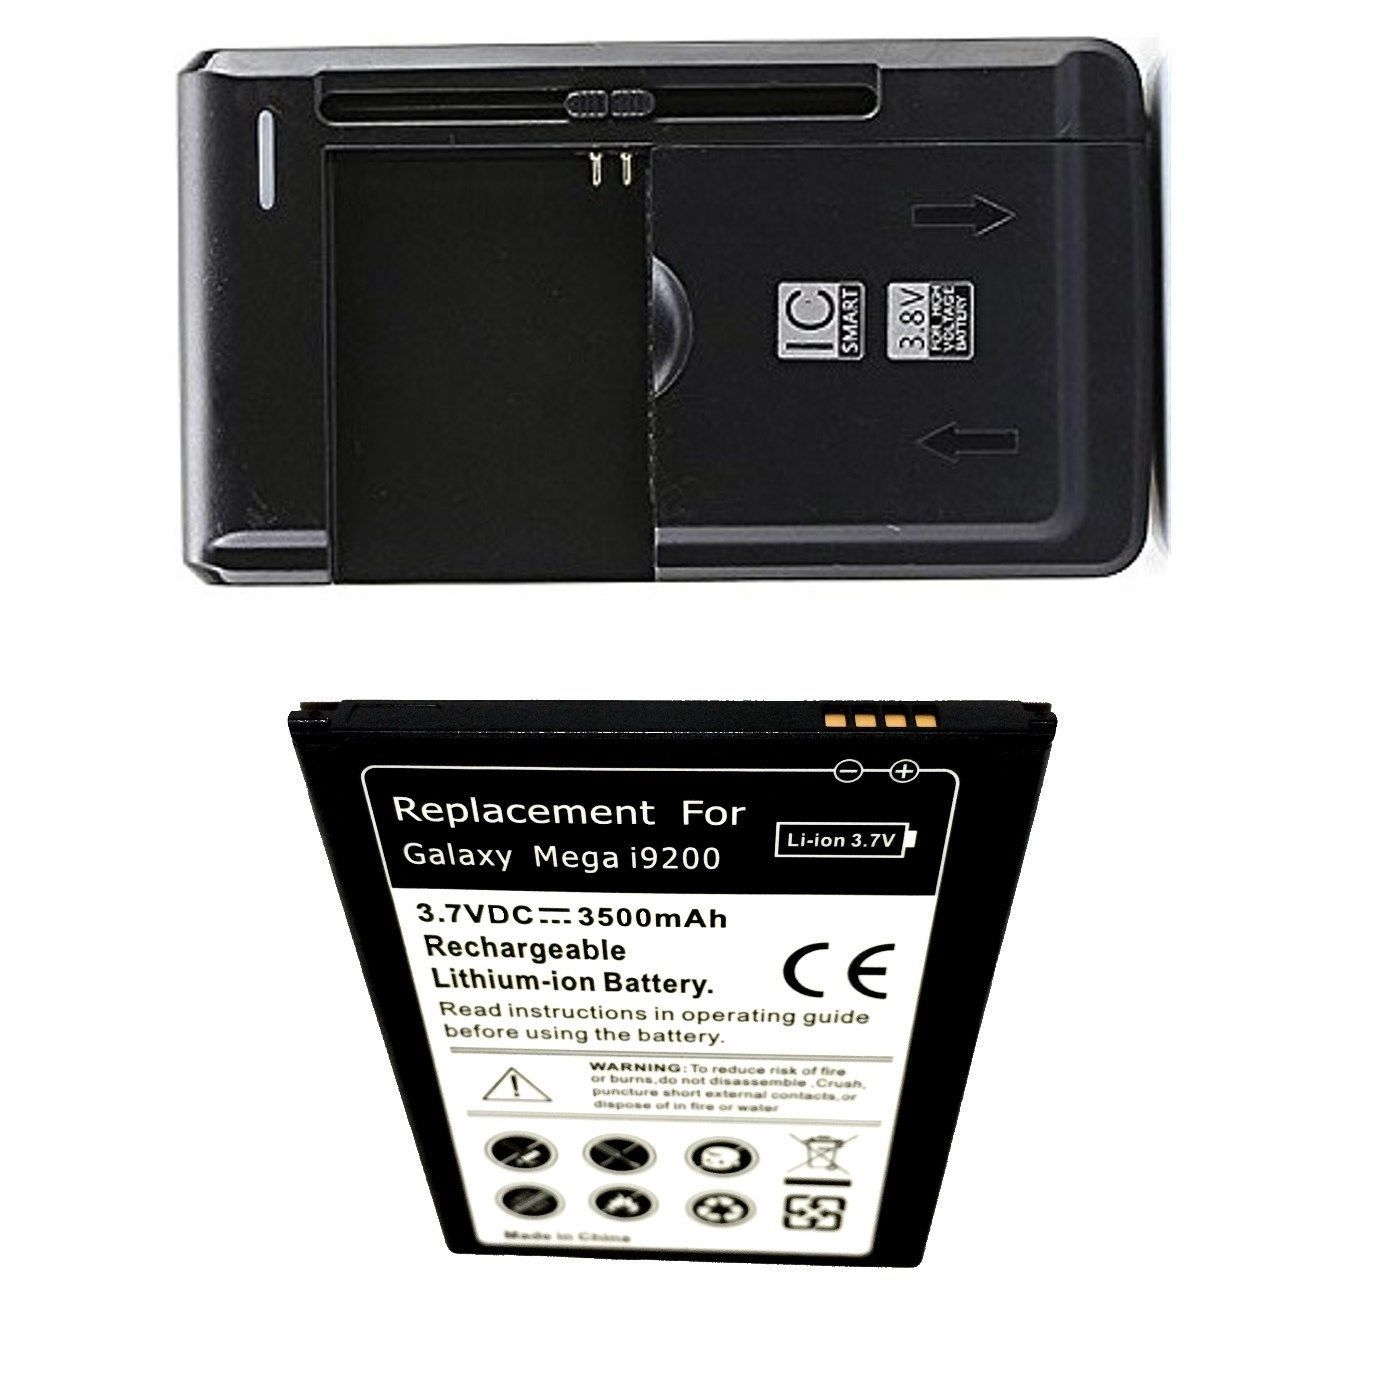 Samsung Galaxy Mega SCH-R960 US Cellular Battery + External Charger Travel House image 1